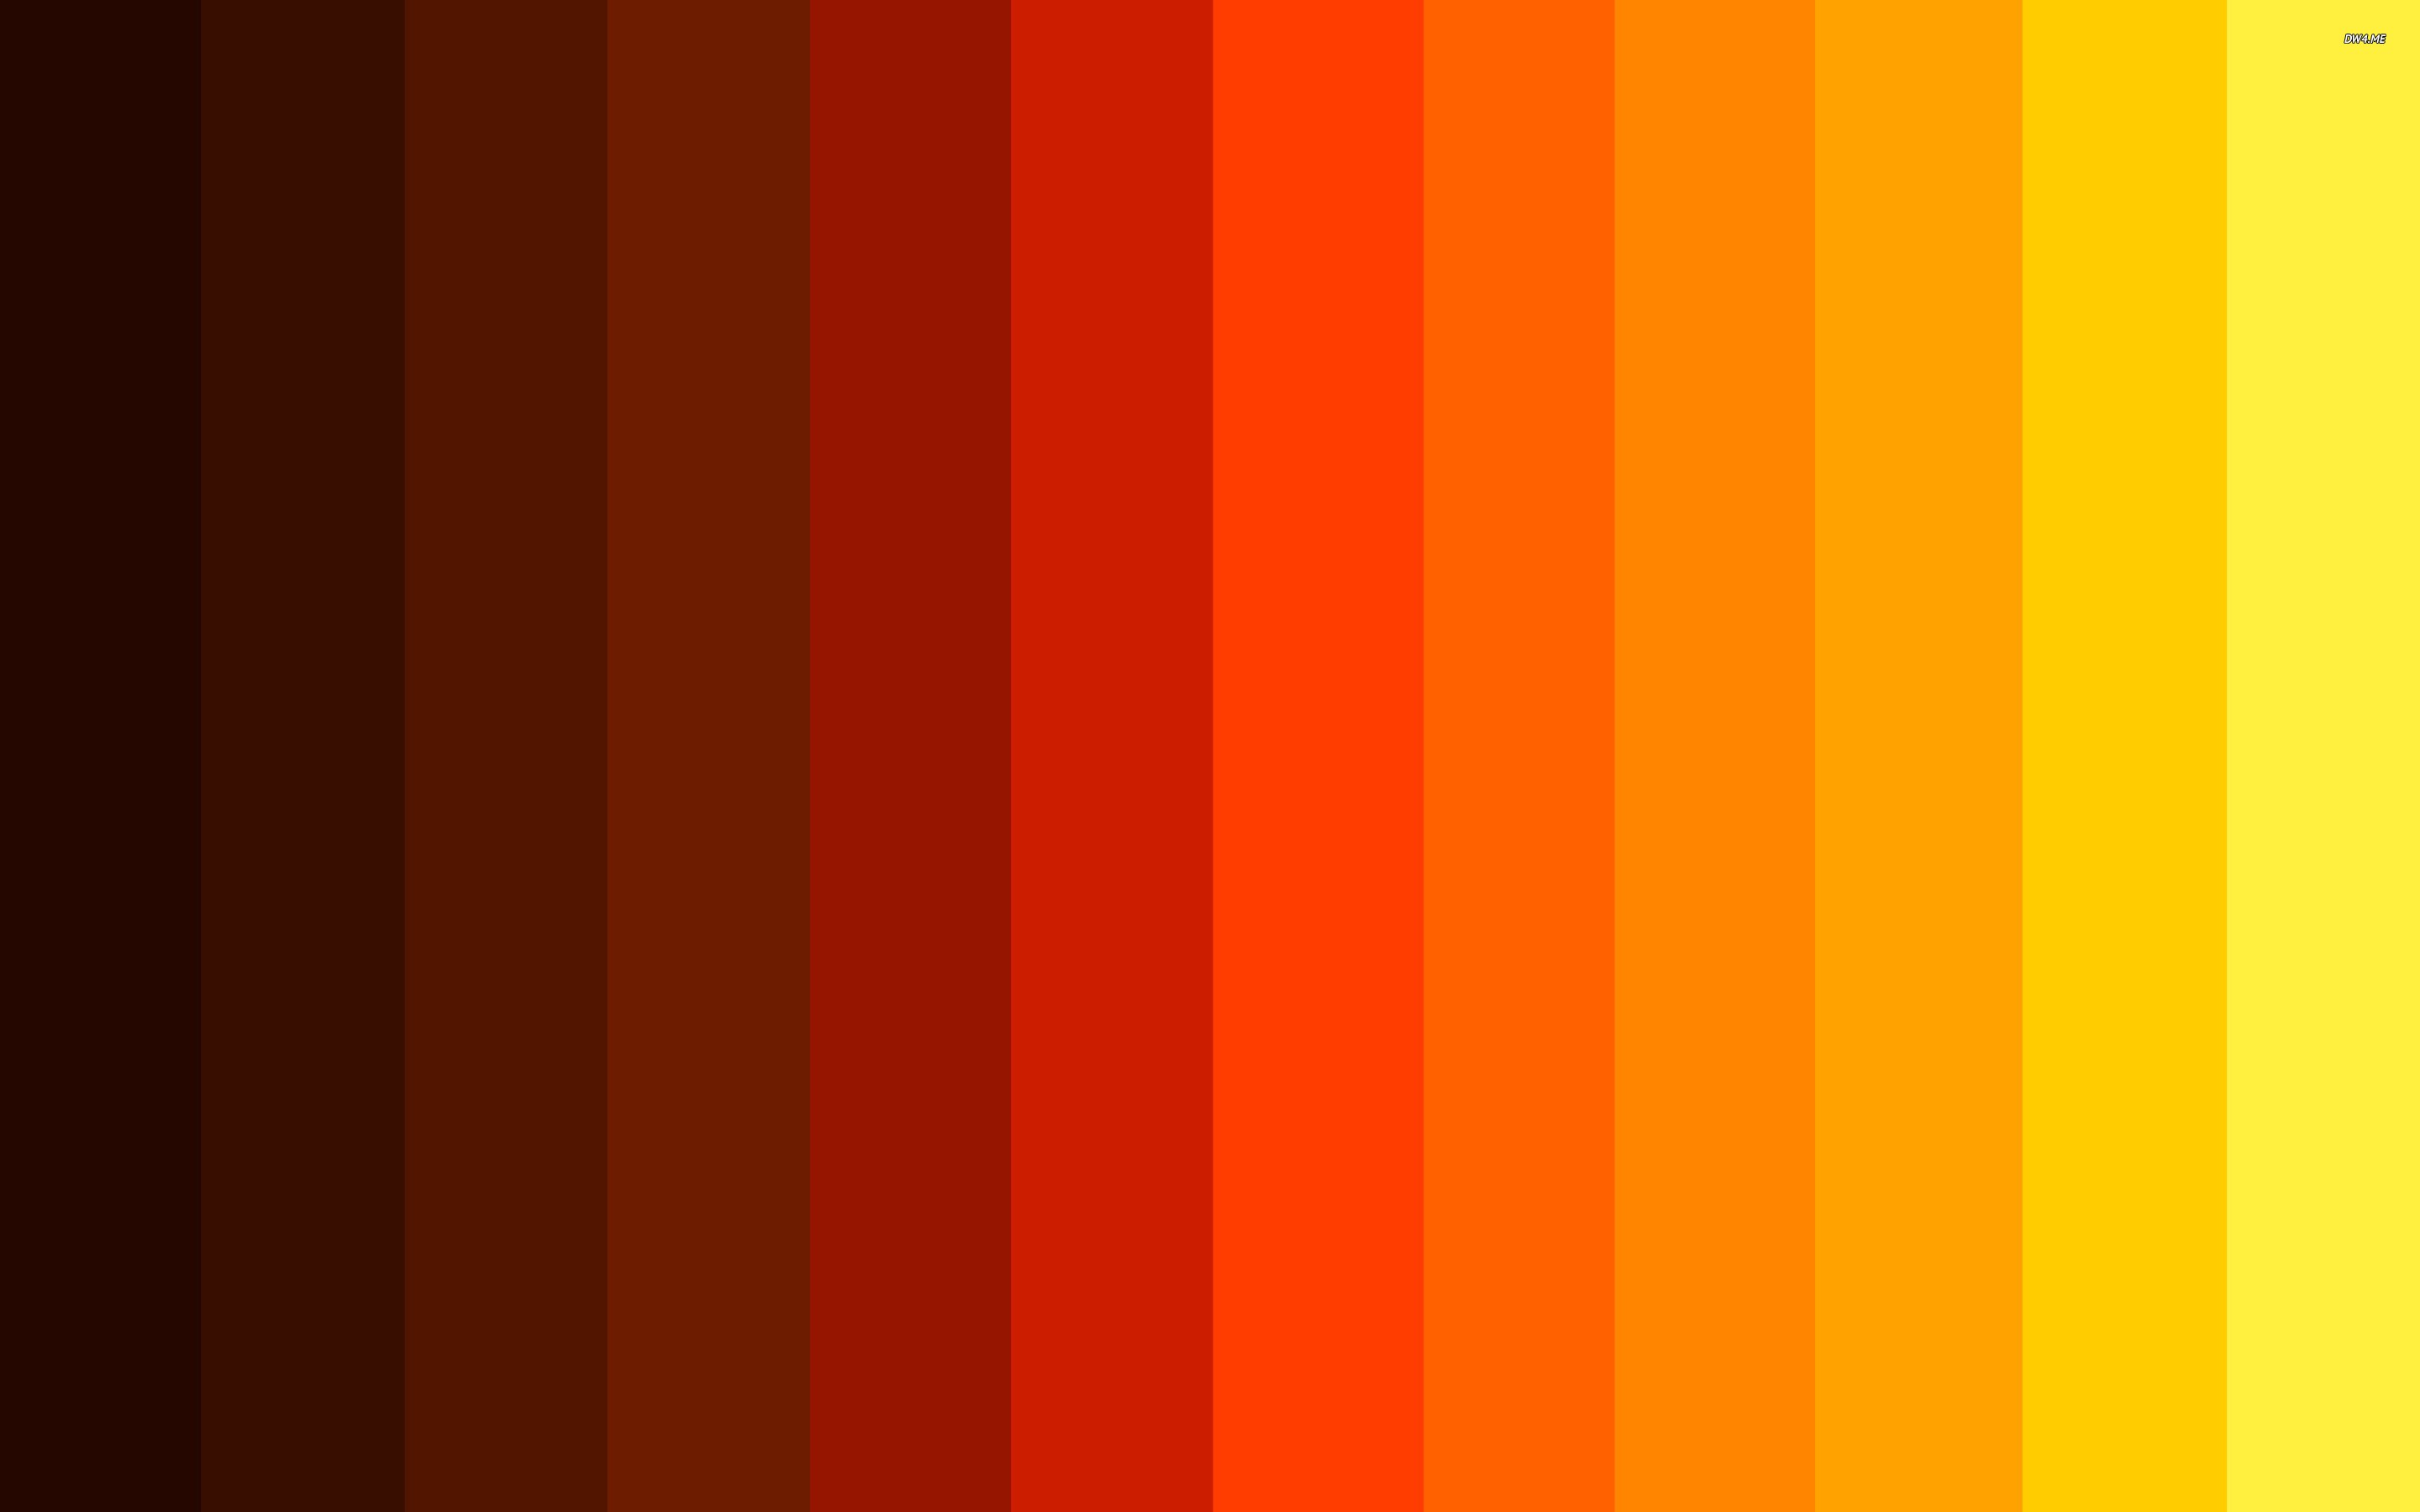 Fall Foliage Iphone Wallpaper 70 Fall Color Backgrounds 183 ① Download Free Awesome